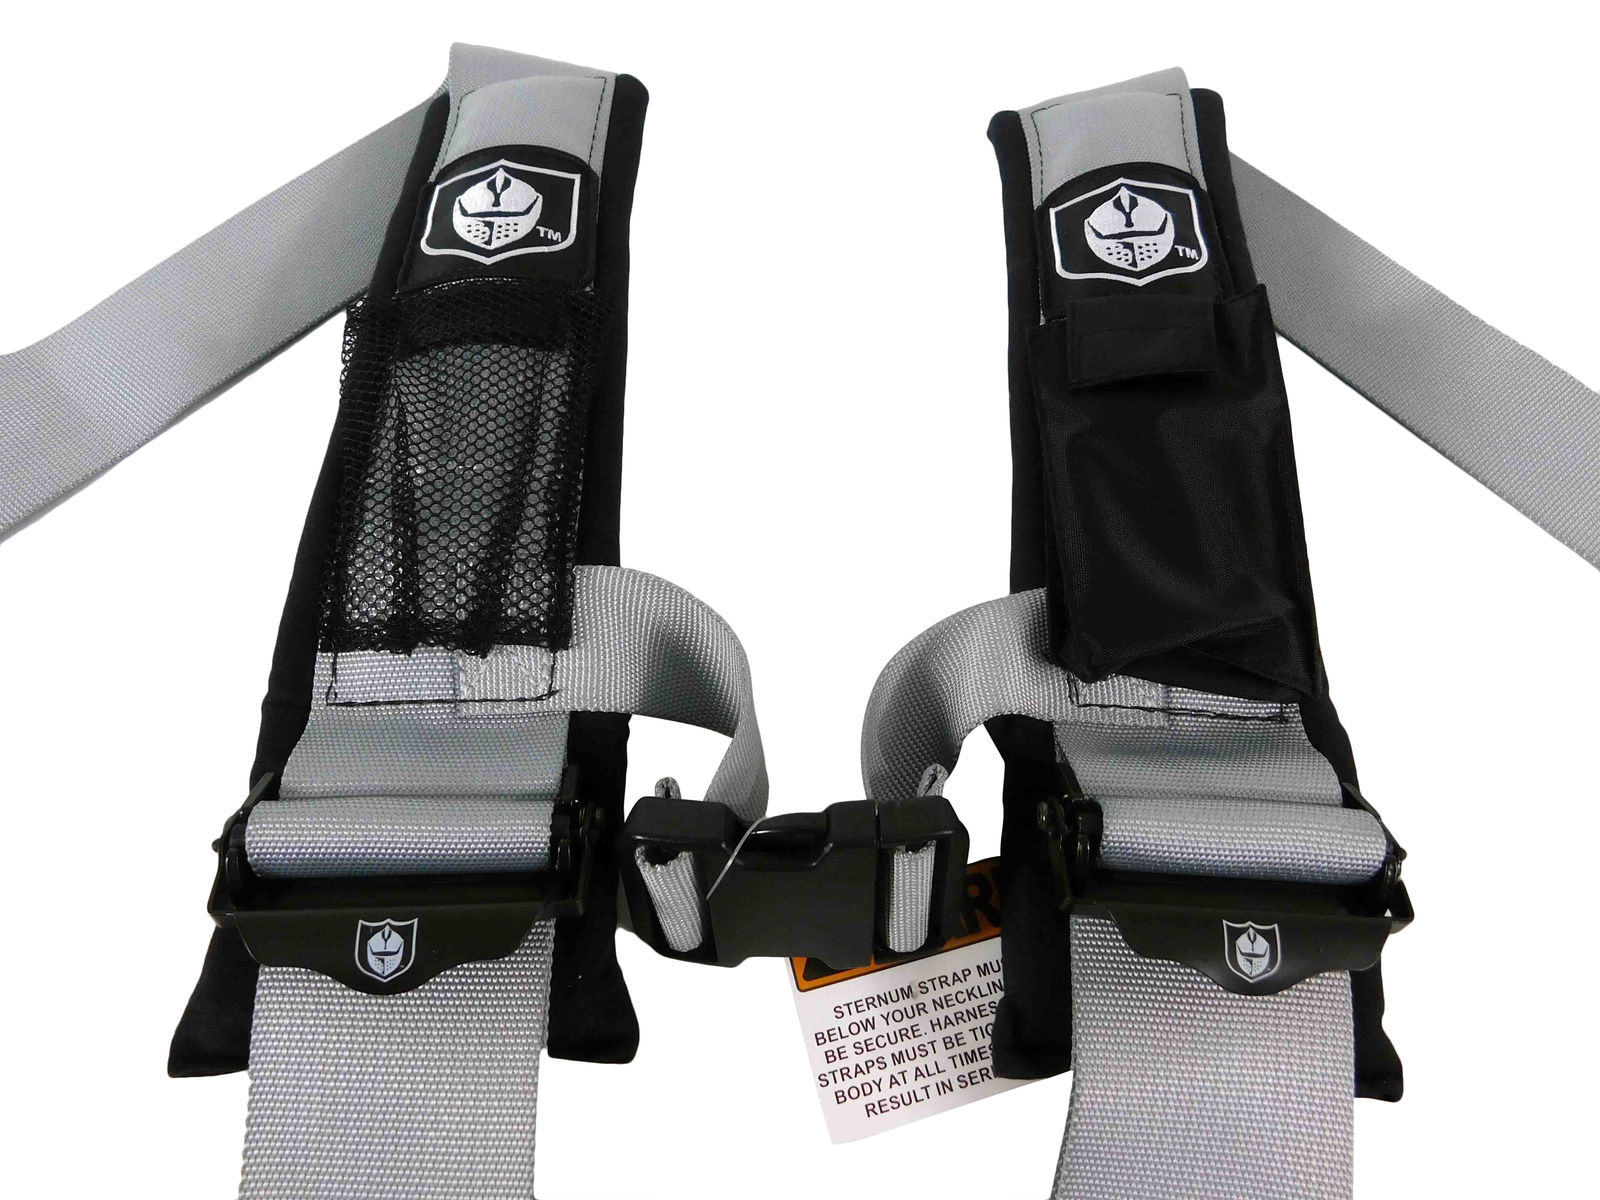 Pro-Armor-A114230ORx2-P151100-4-Point-3-Harness-w-Override-Clip-Silver-2-PACK-image-3